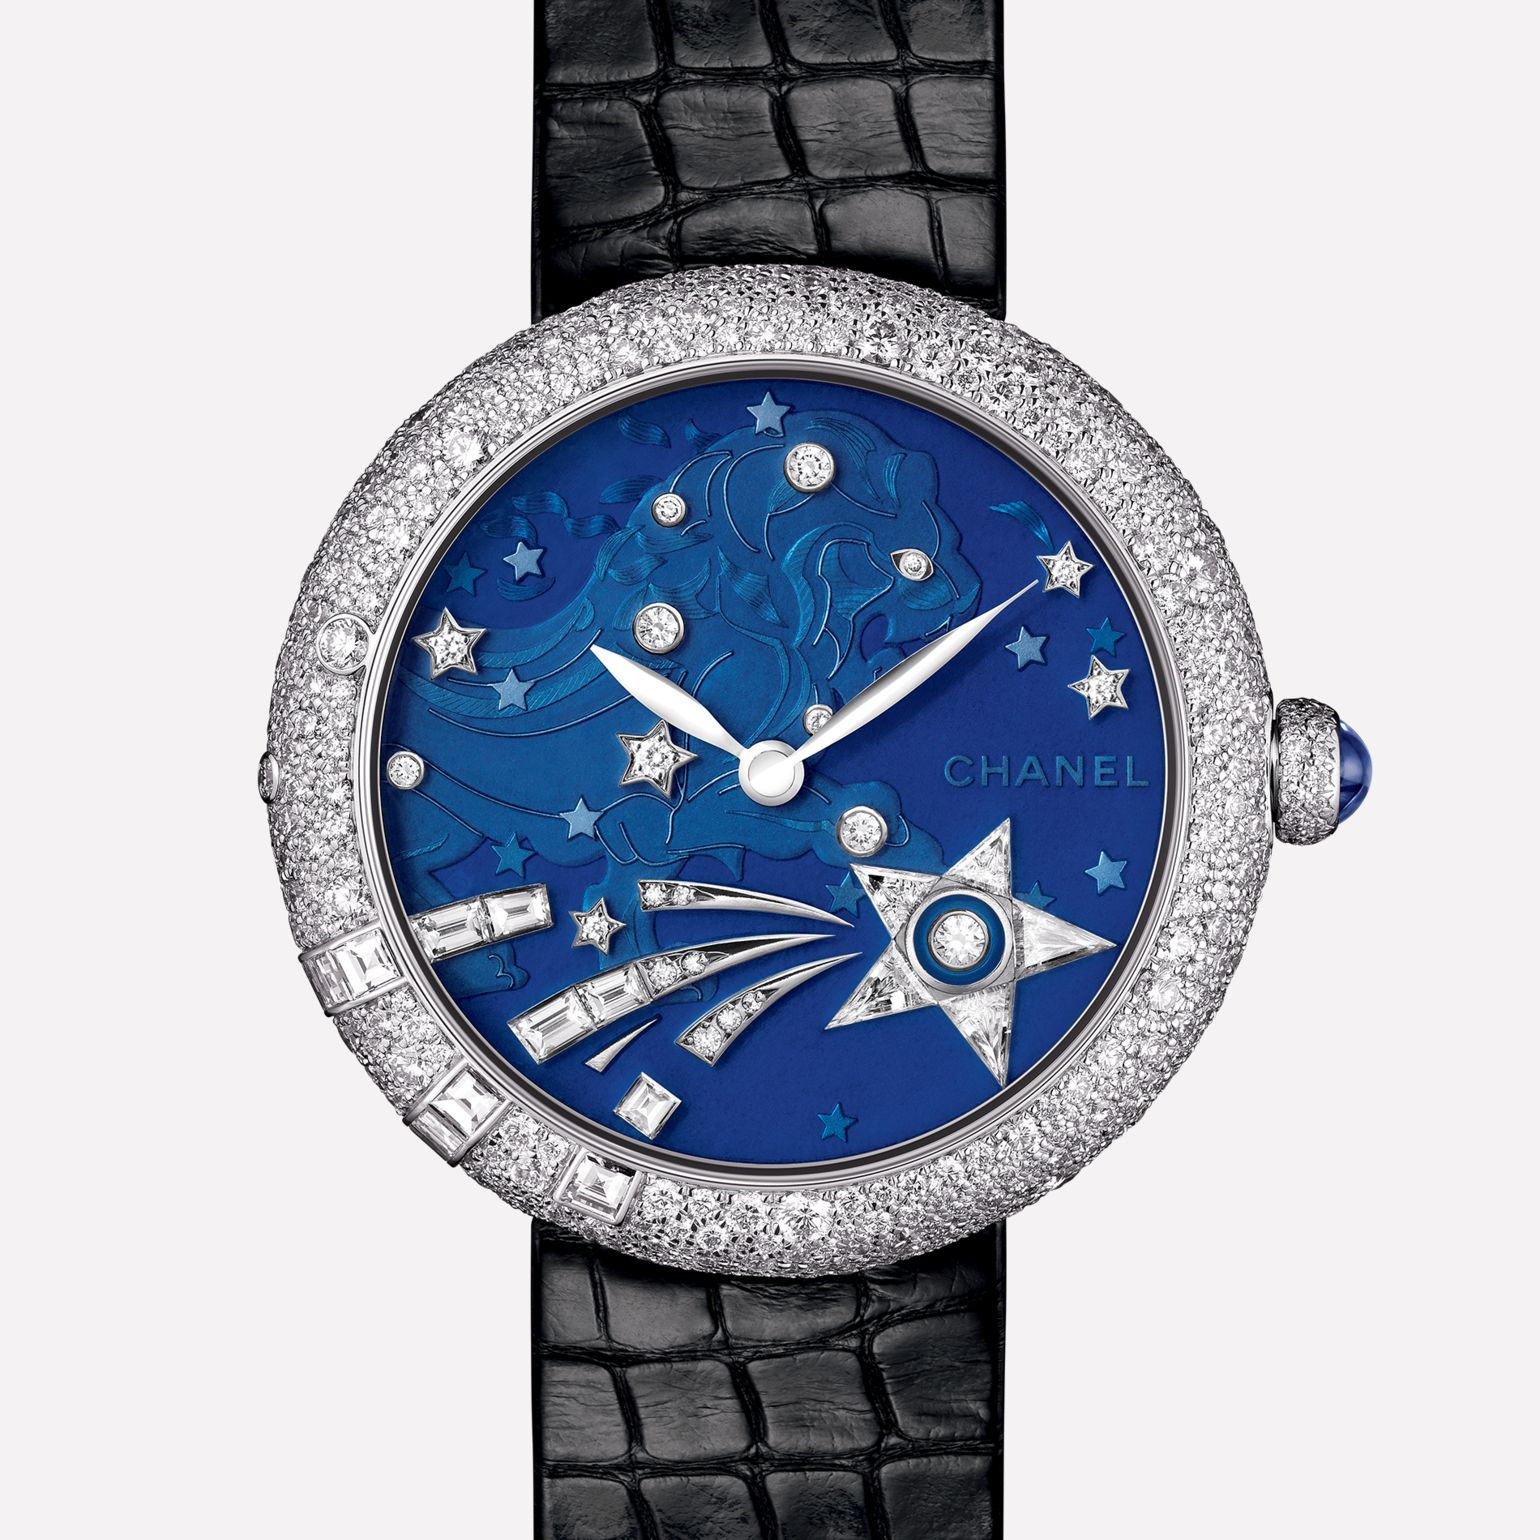 Orologio Mademoiselle Privé Joaillerie La Constellation du Lion - Smalto Grand Feu blu traslucido e diamanti